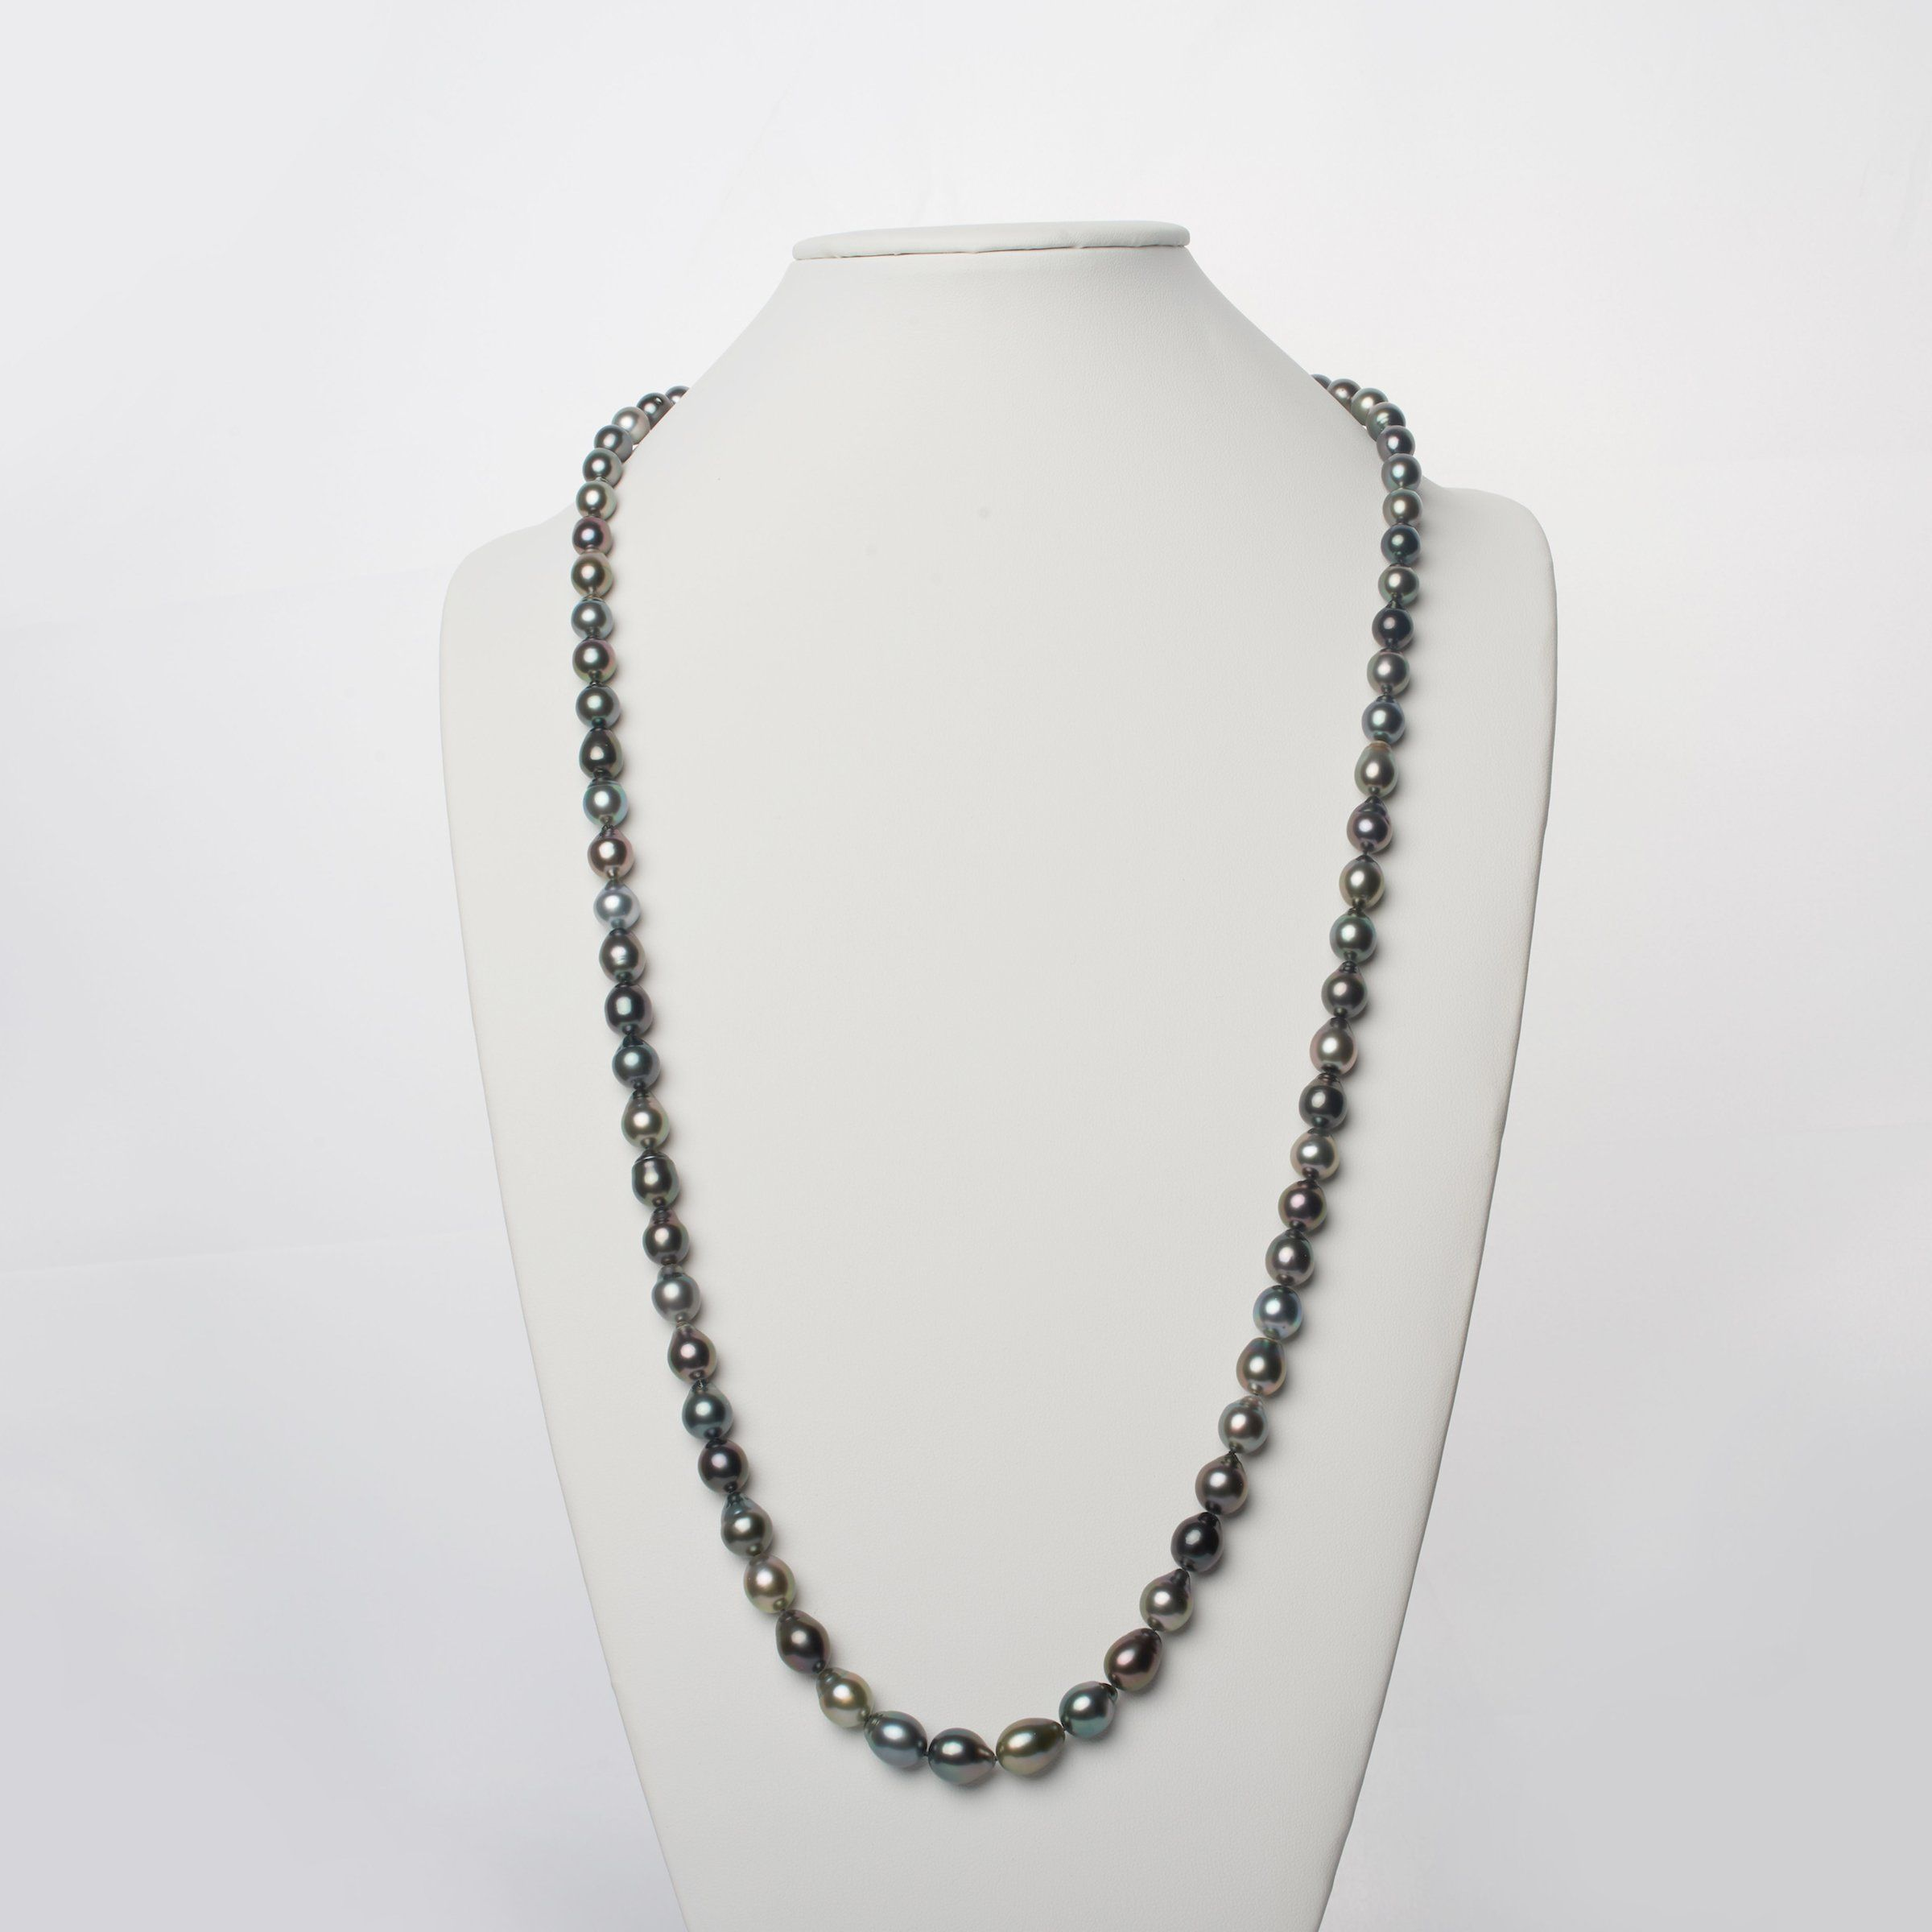 8.5-10.6 mm AAA Tahitian Drop Pearl Necklace - 35 Inches